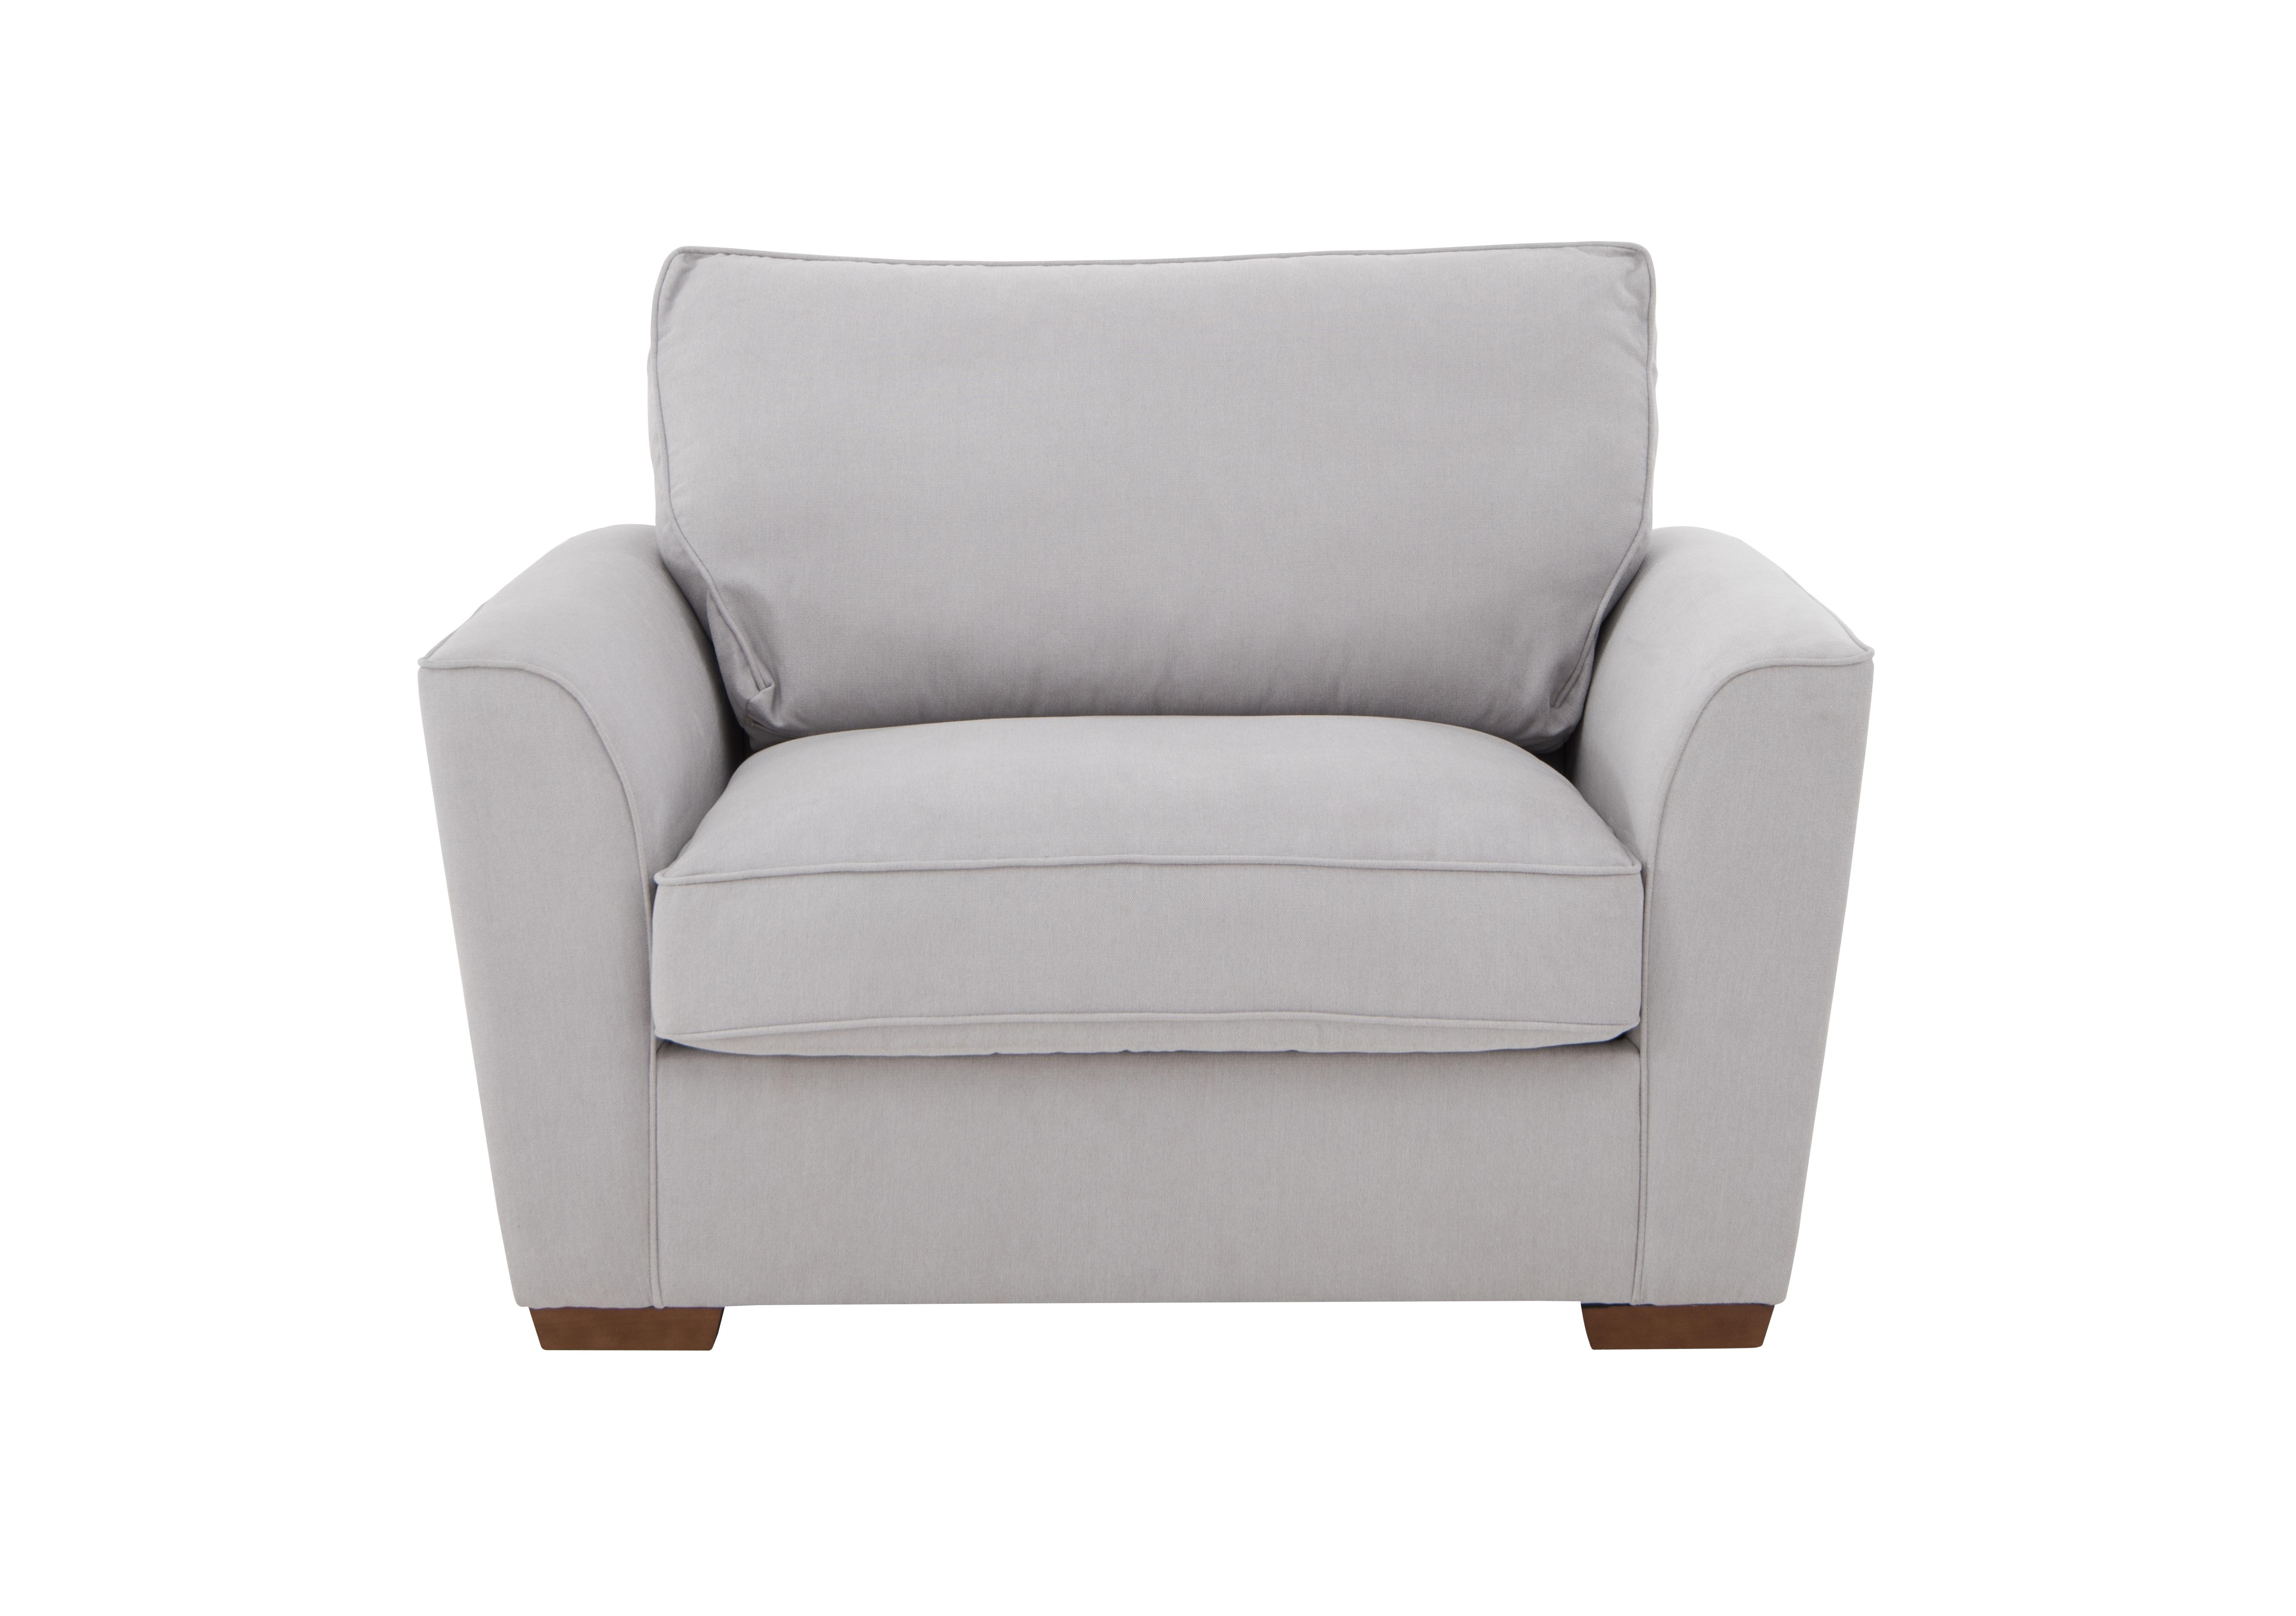 The Weekender Collection Fable Fabric Deluxe Armchair Sofa Bed